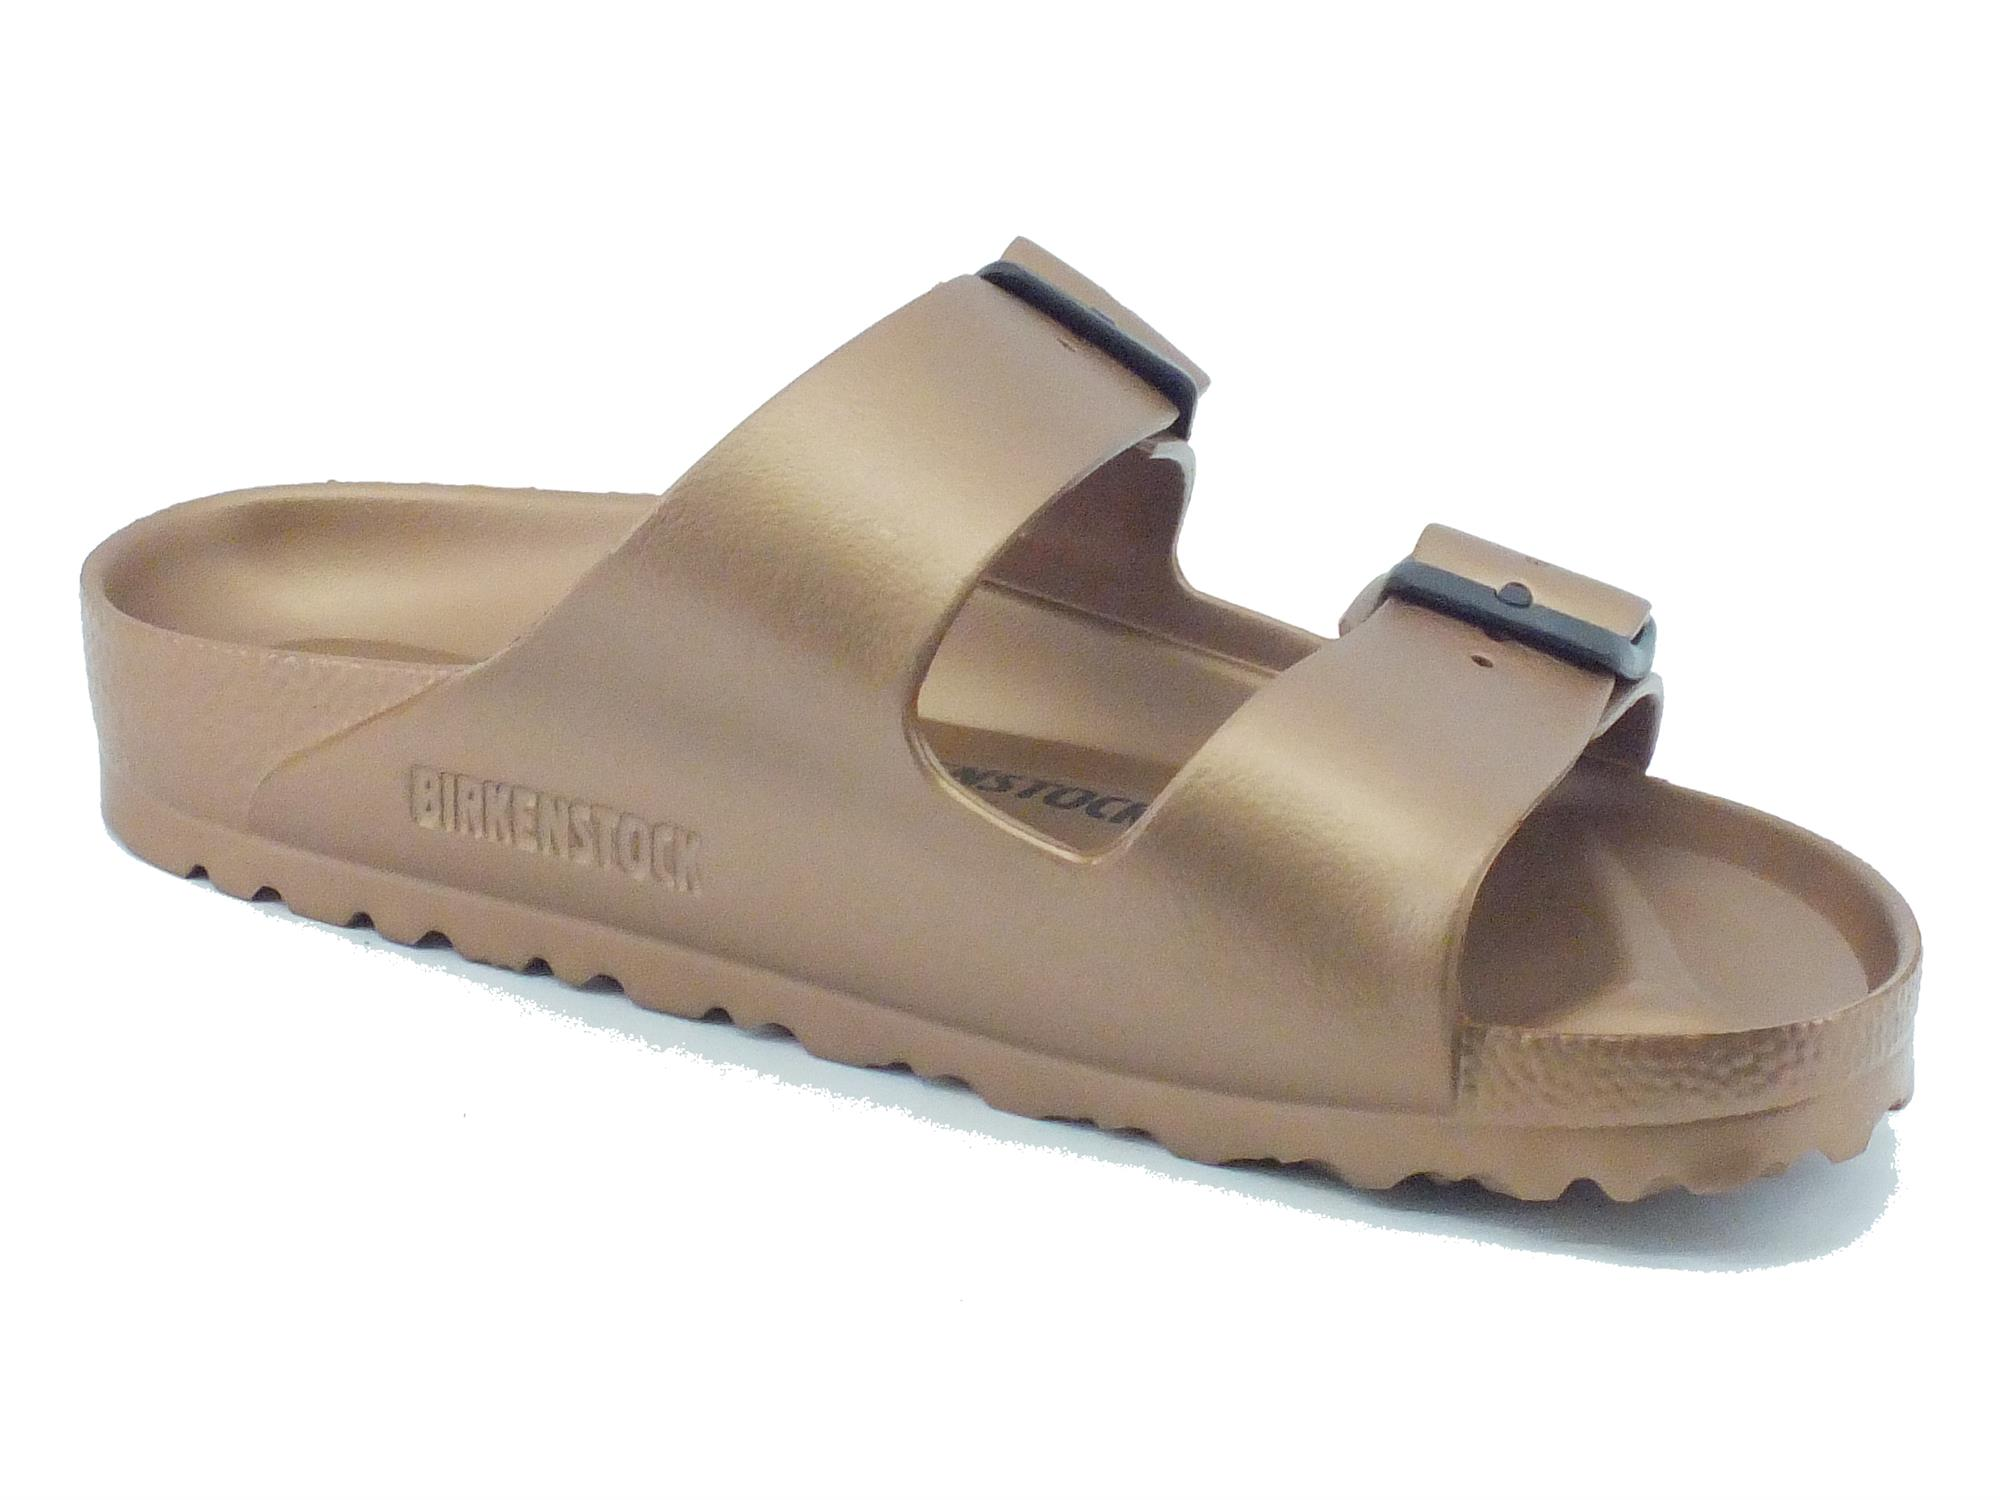 Sandali Birkenstock Arizona EVA Copper per donna Sandali Birkenstock  Arizona EVA Copper per donna ... 21e4189abc8